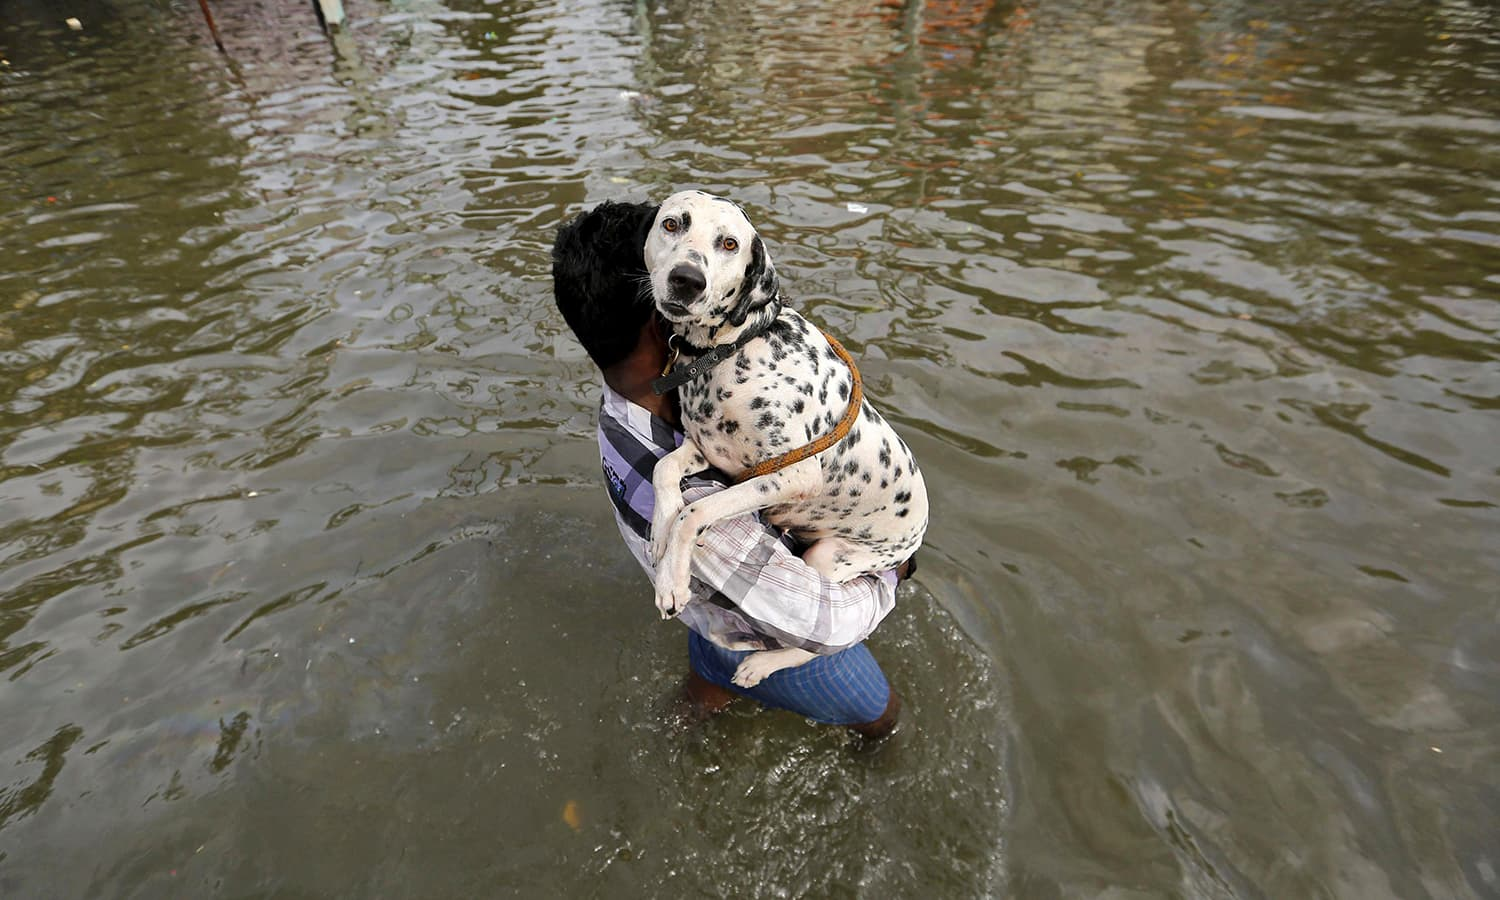 A man carries a dog as he wades through a flooded street in Chennai, in the southern state of Tamil Nadu, India, December 3, 2015.  — Reuters